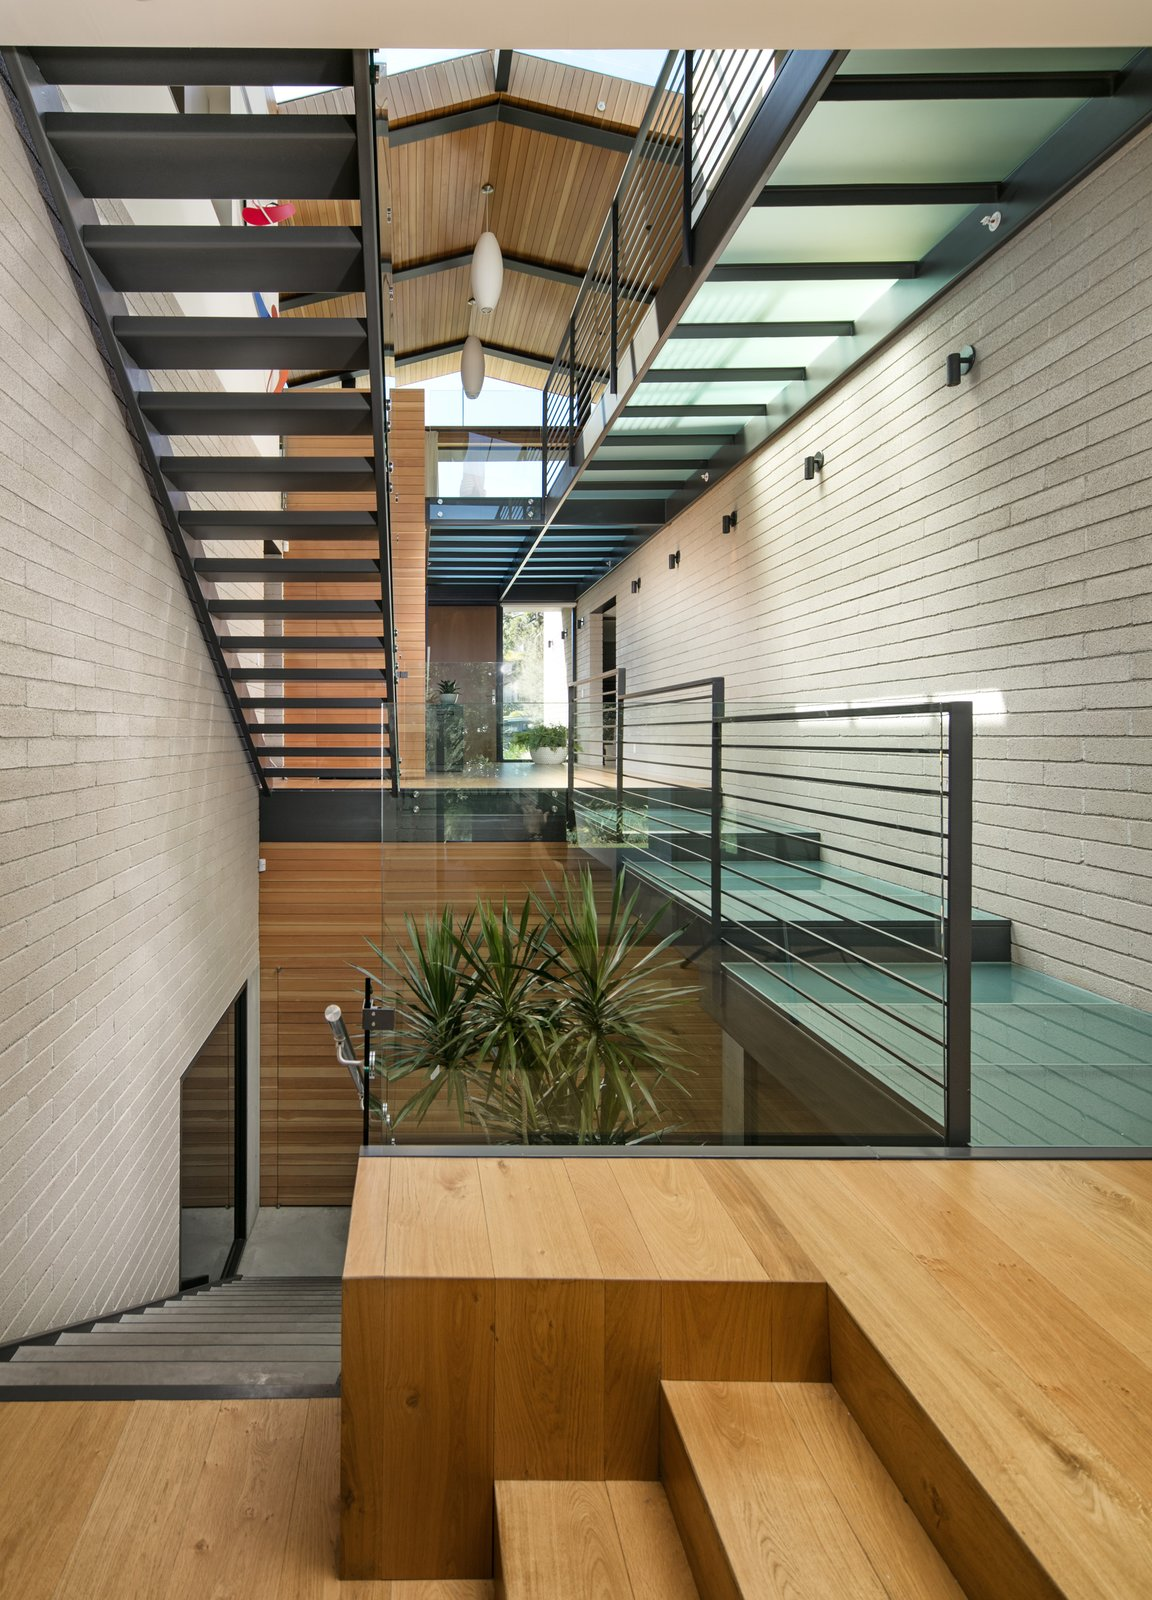 Glass is a prominent material used throughout the residence, seen from the very top of the structure in the form of expansive skylights and layered all the way down through the various levels of walkways.  Not only does this articulate volume, but it also allows the natural light to stream through all levels of the home.  Cohen Residence by Abramson Teiger Architects